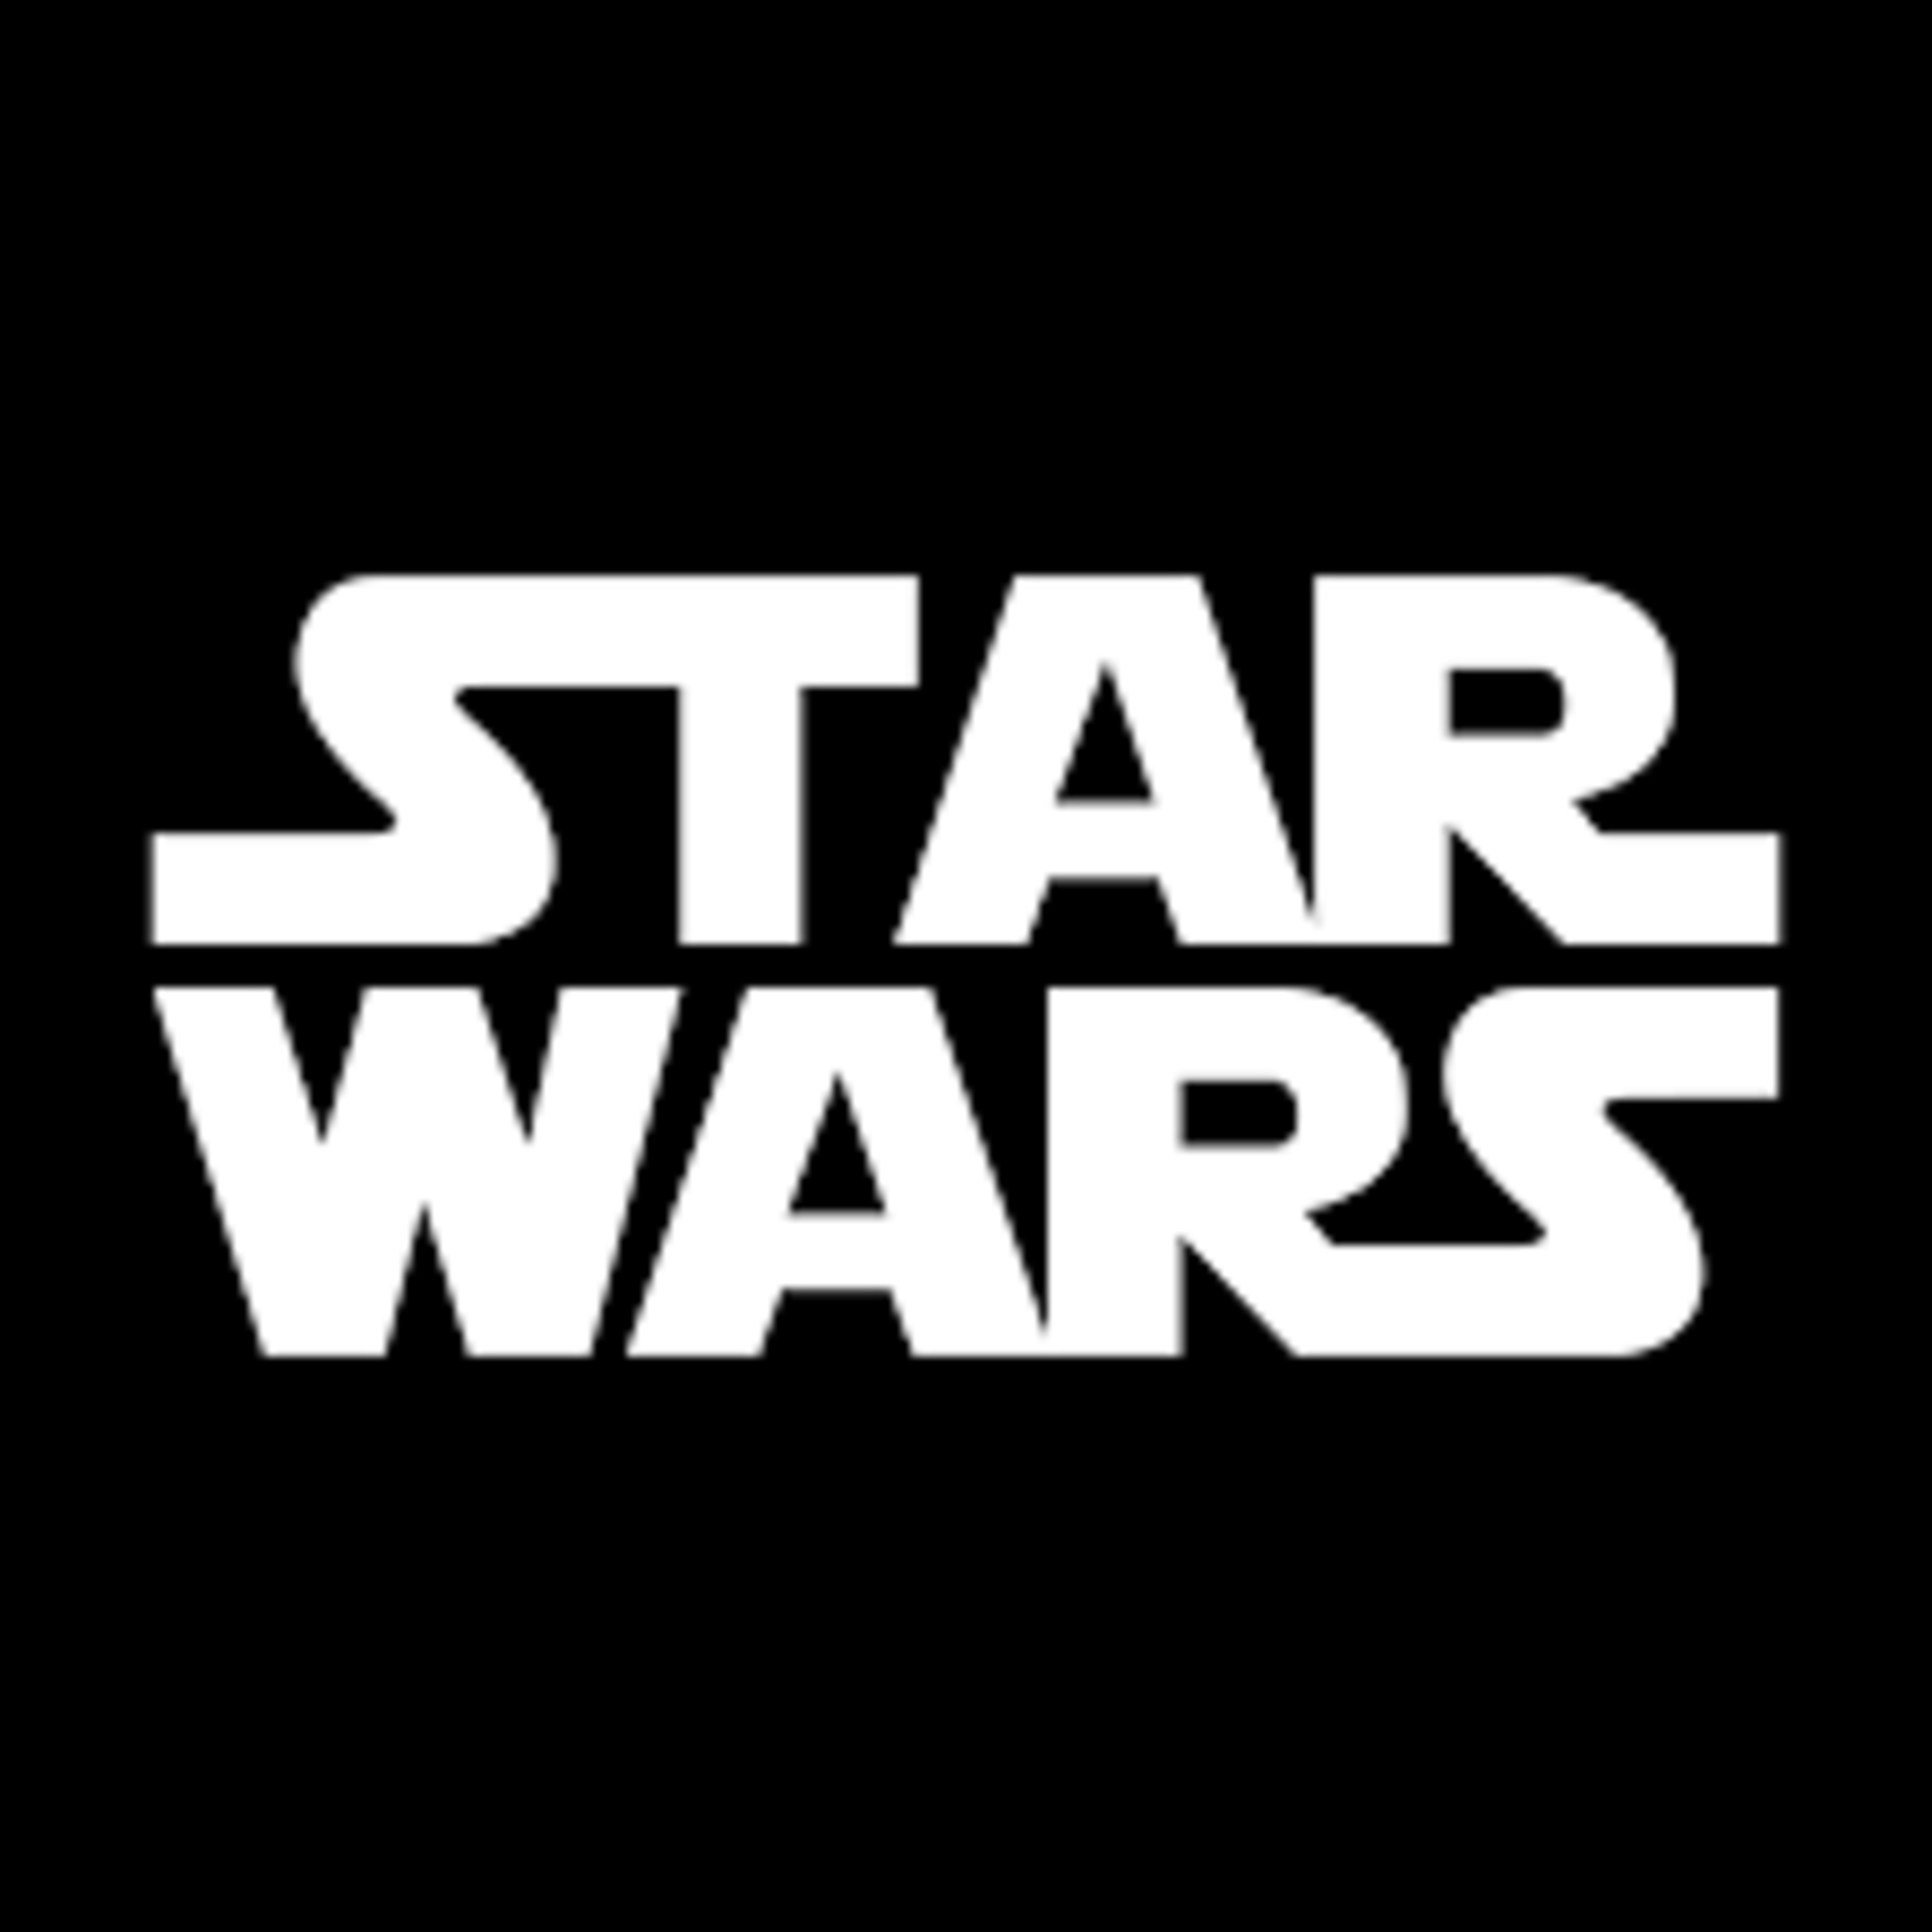 Star Wars: Episode 1 - In the Knick of Time